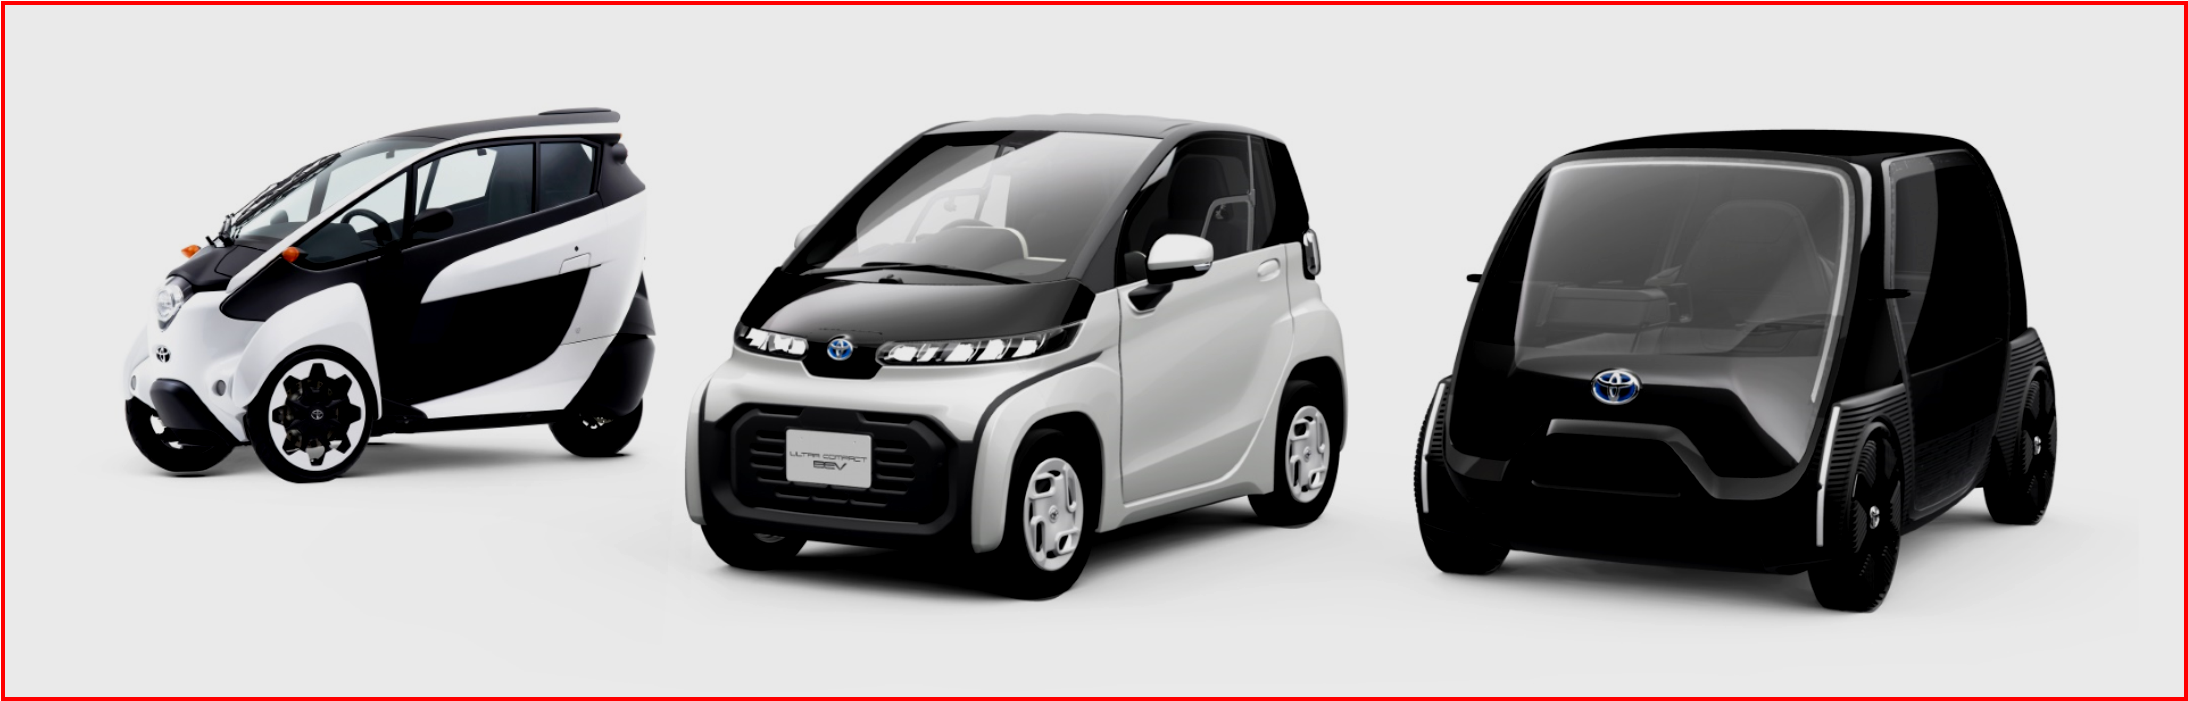 AutoInfrmed.com on 2019Tokyo Motor Show